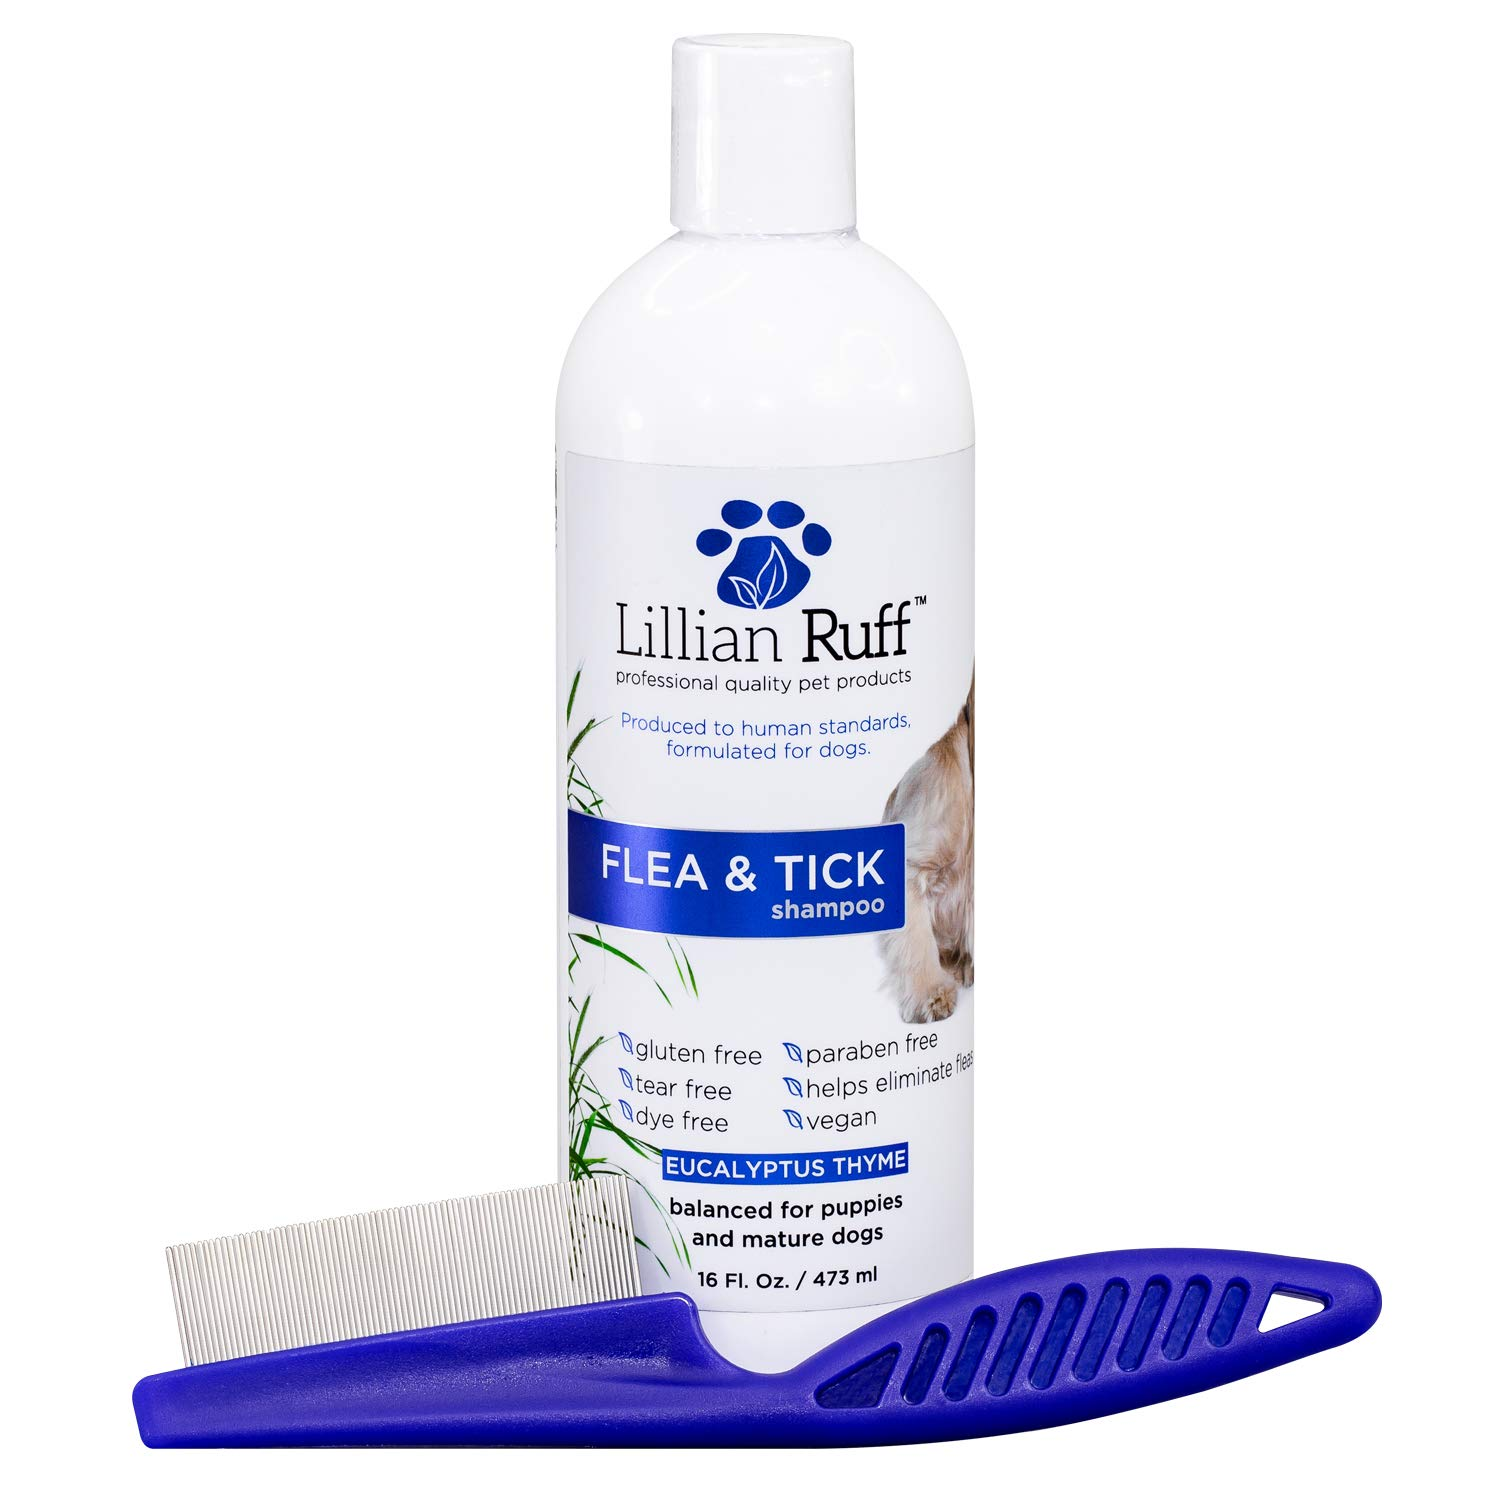 Lillian Ruff Flea and Tick Shampoo for Dogs with Aloe Vera - Soothe The Itch and Repel The Critters with Natural Essential Oils - Balanced for Puppies and Mature Dogs (16 oz with Flea Comb) by Lillian Ruff